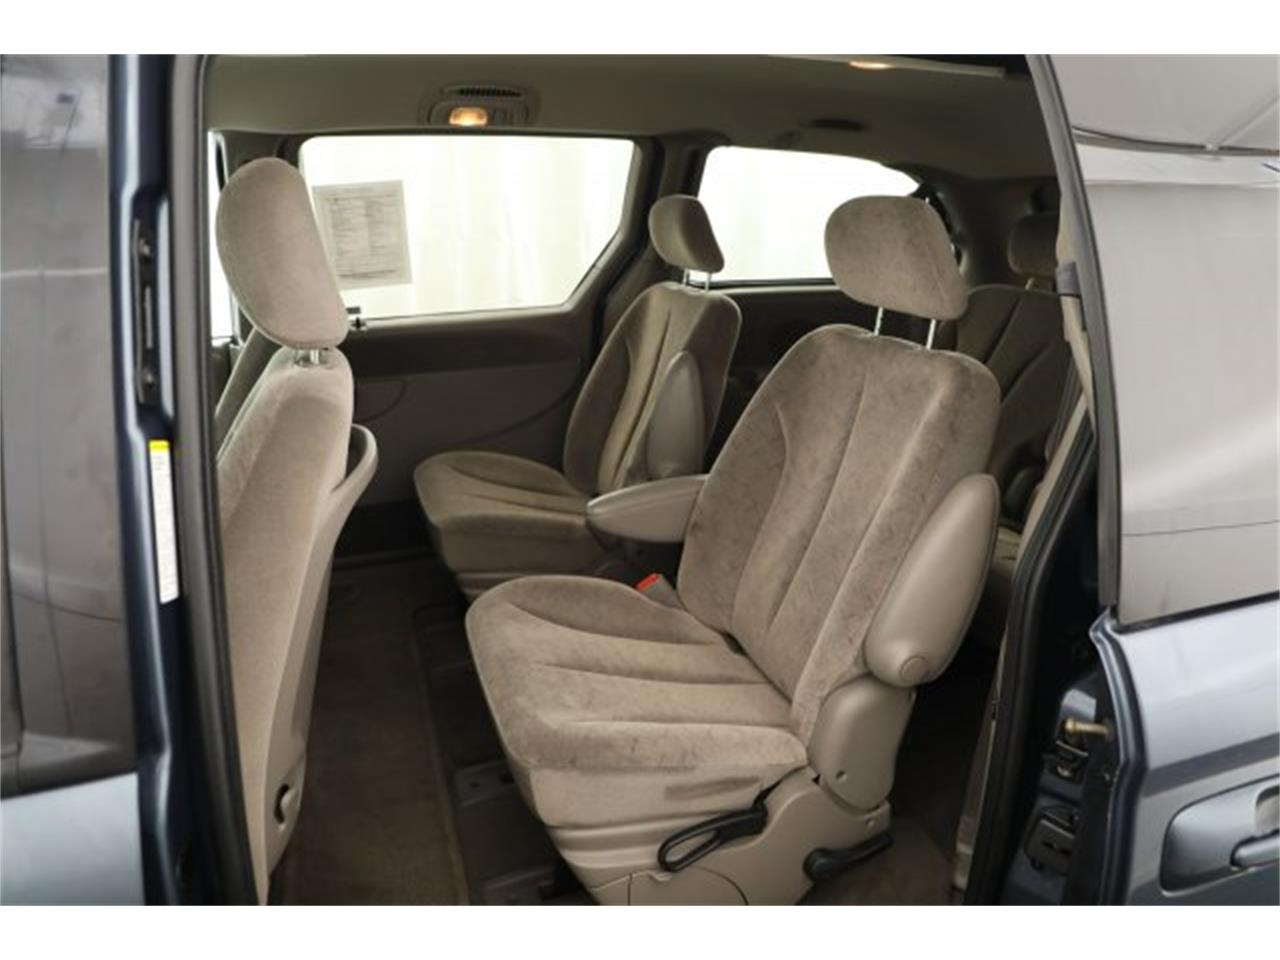 Large Picture of 2001 Chrysler Town & Country located in Washington - $6,995.00 - LAVD